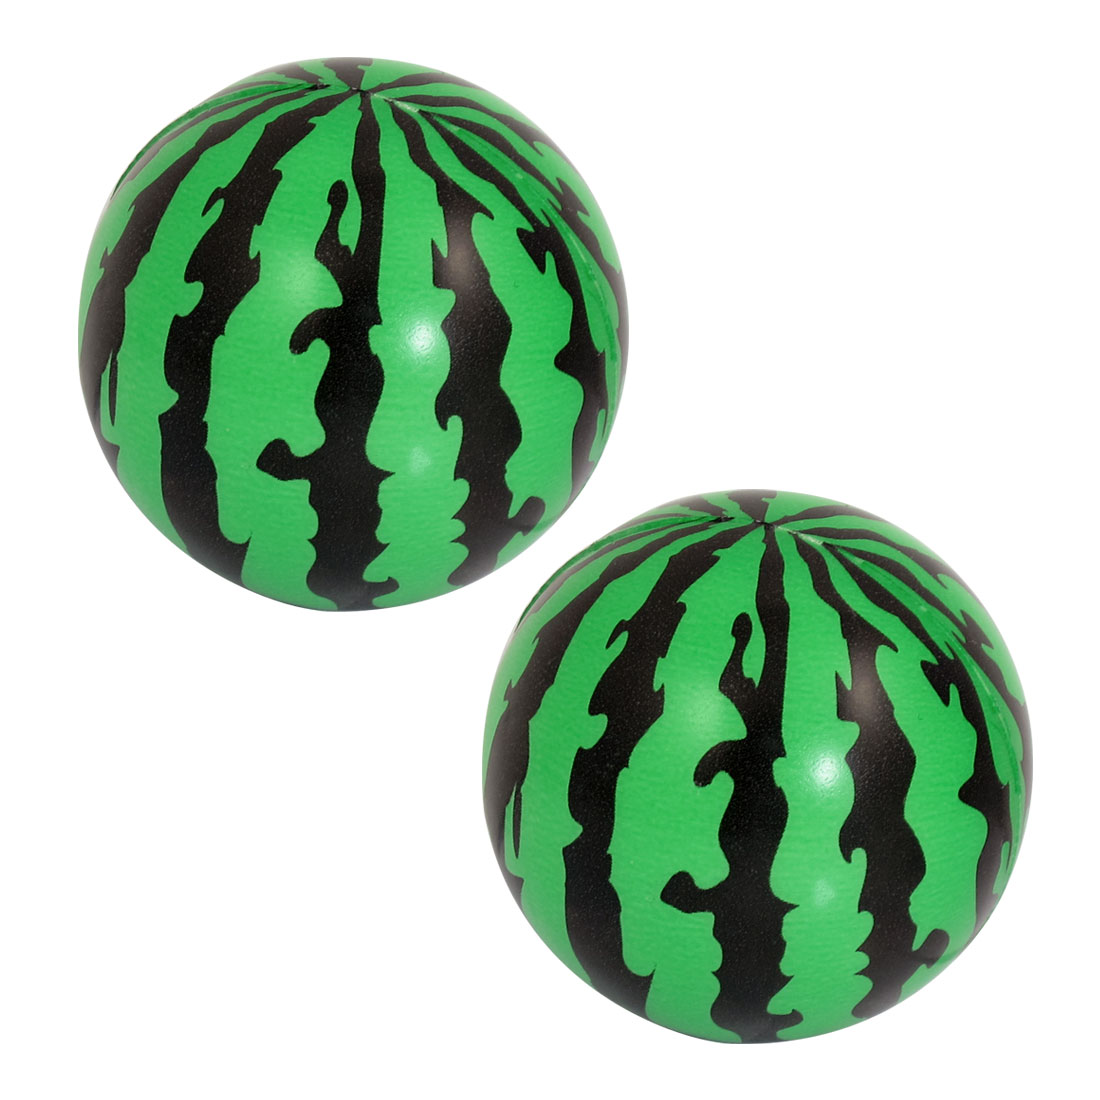 "Child Foam Squeeze Stress Sponge Green Black 2.3"" Dia Watermelons Ball Toy 2 Pcs"